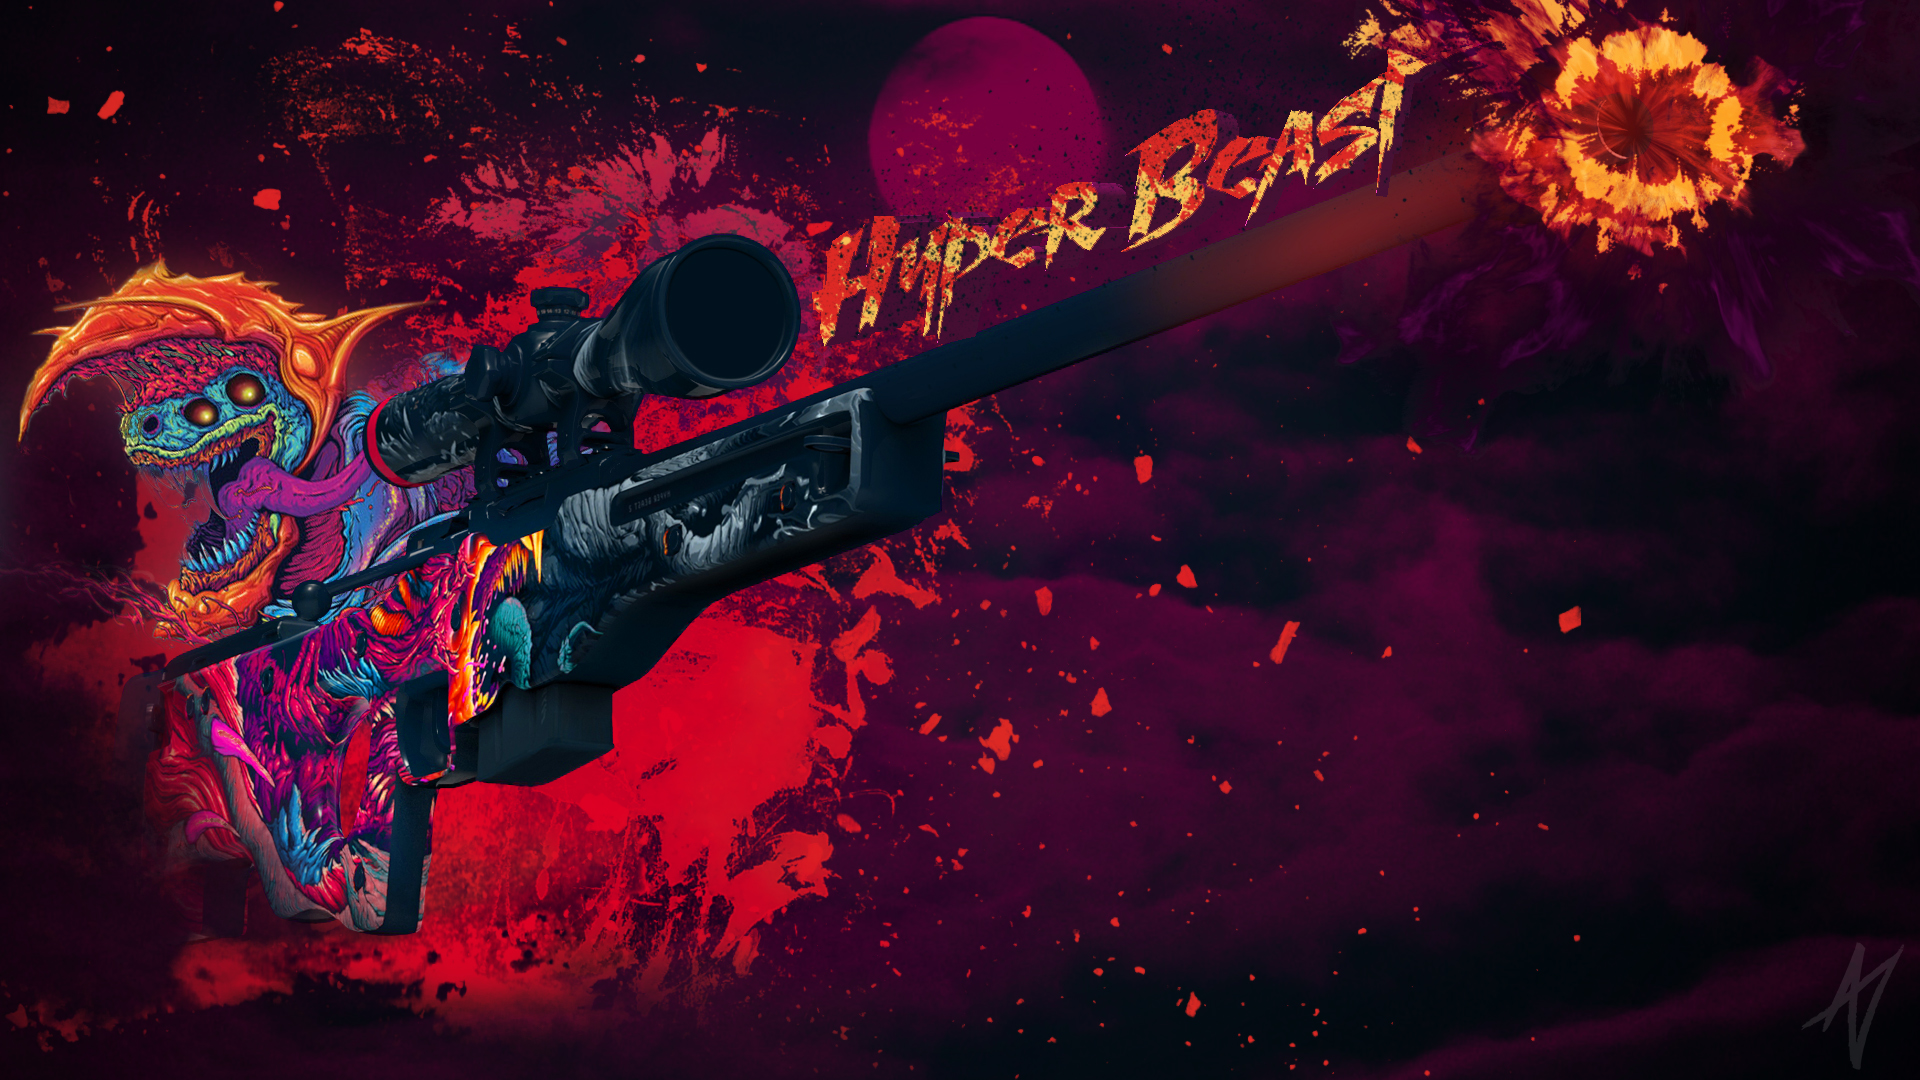 Awp Hyper Beast Cs Go Wallpapers And Backgrounds